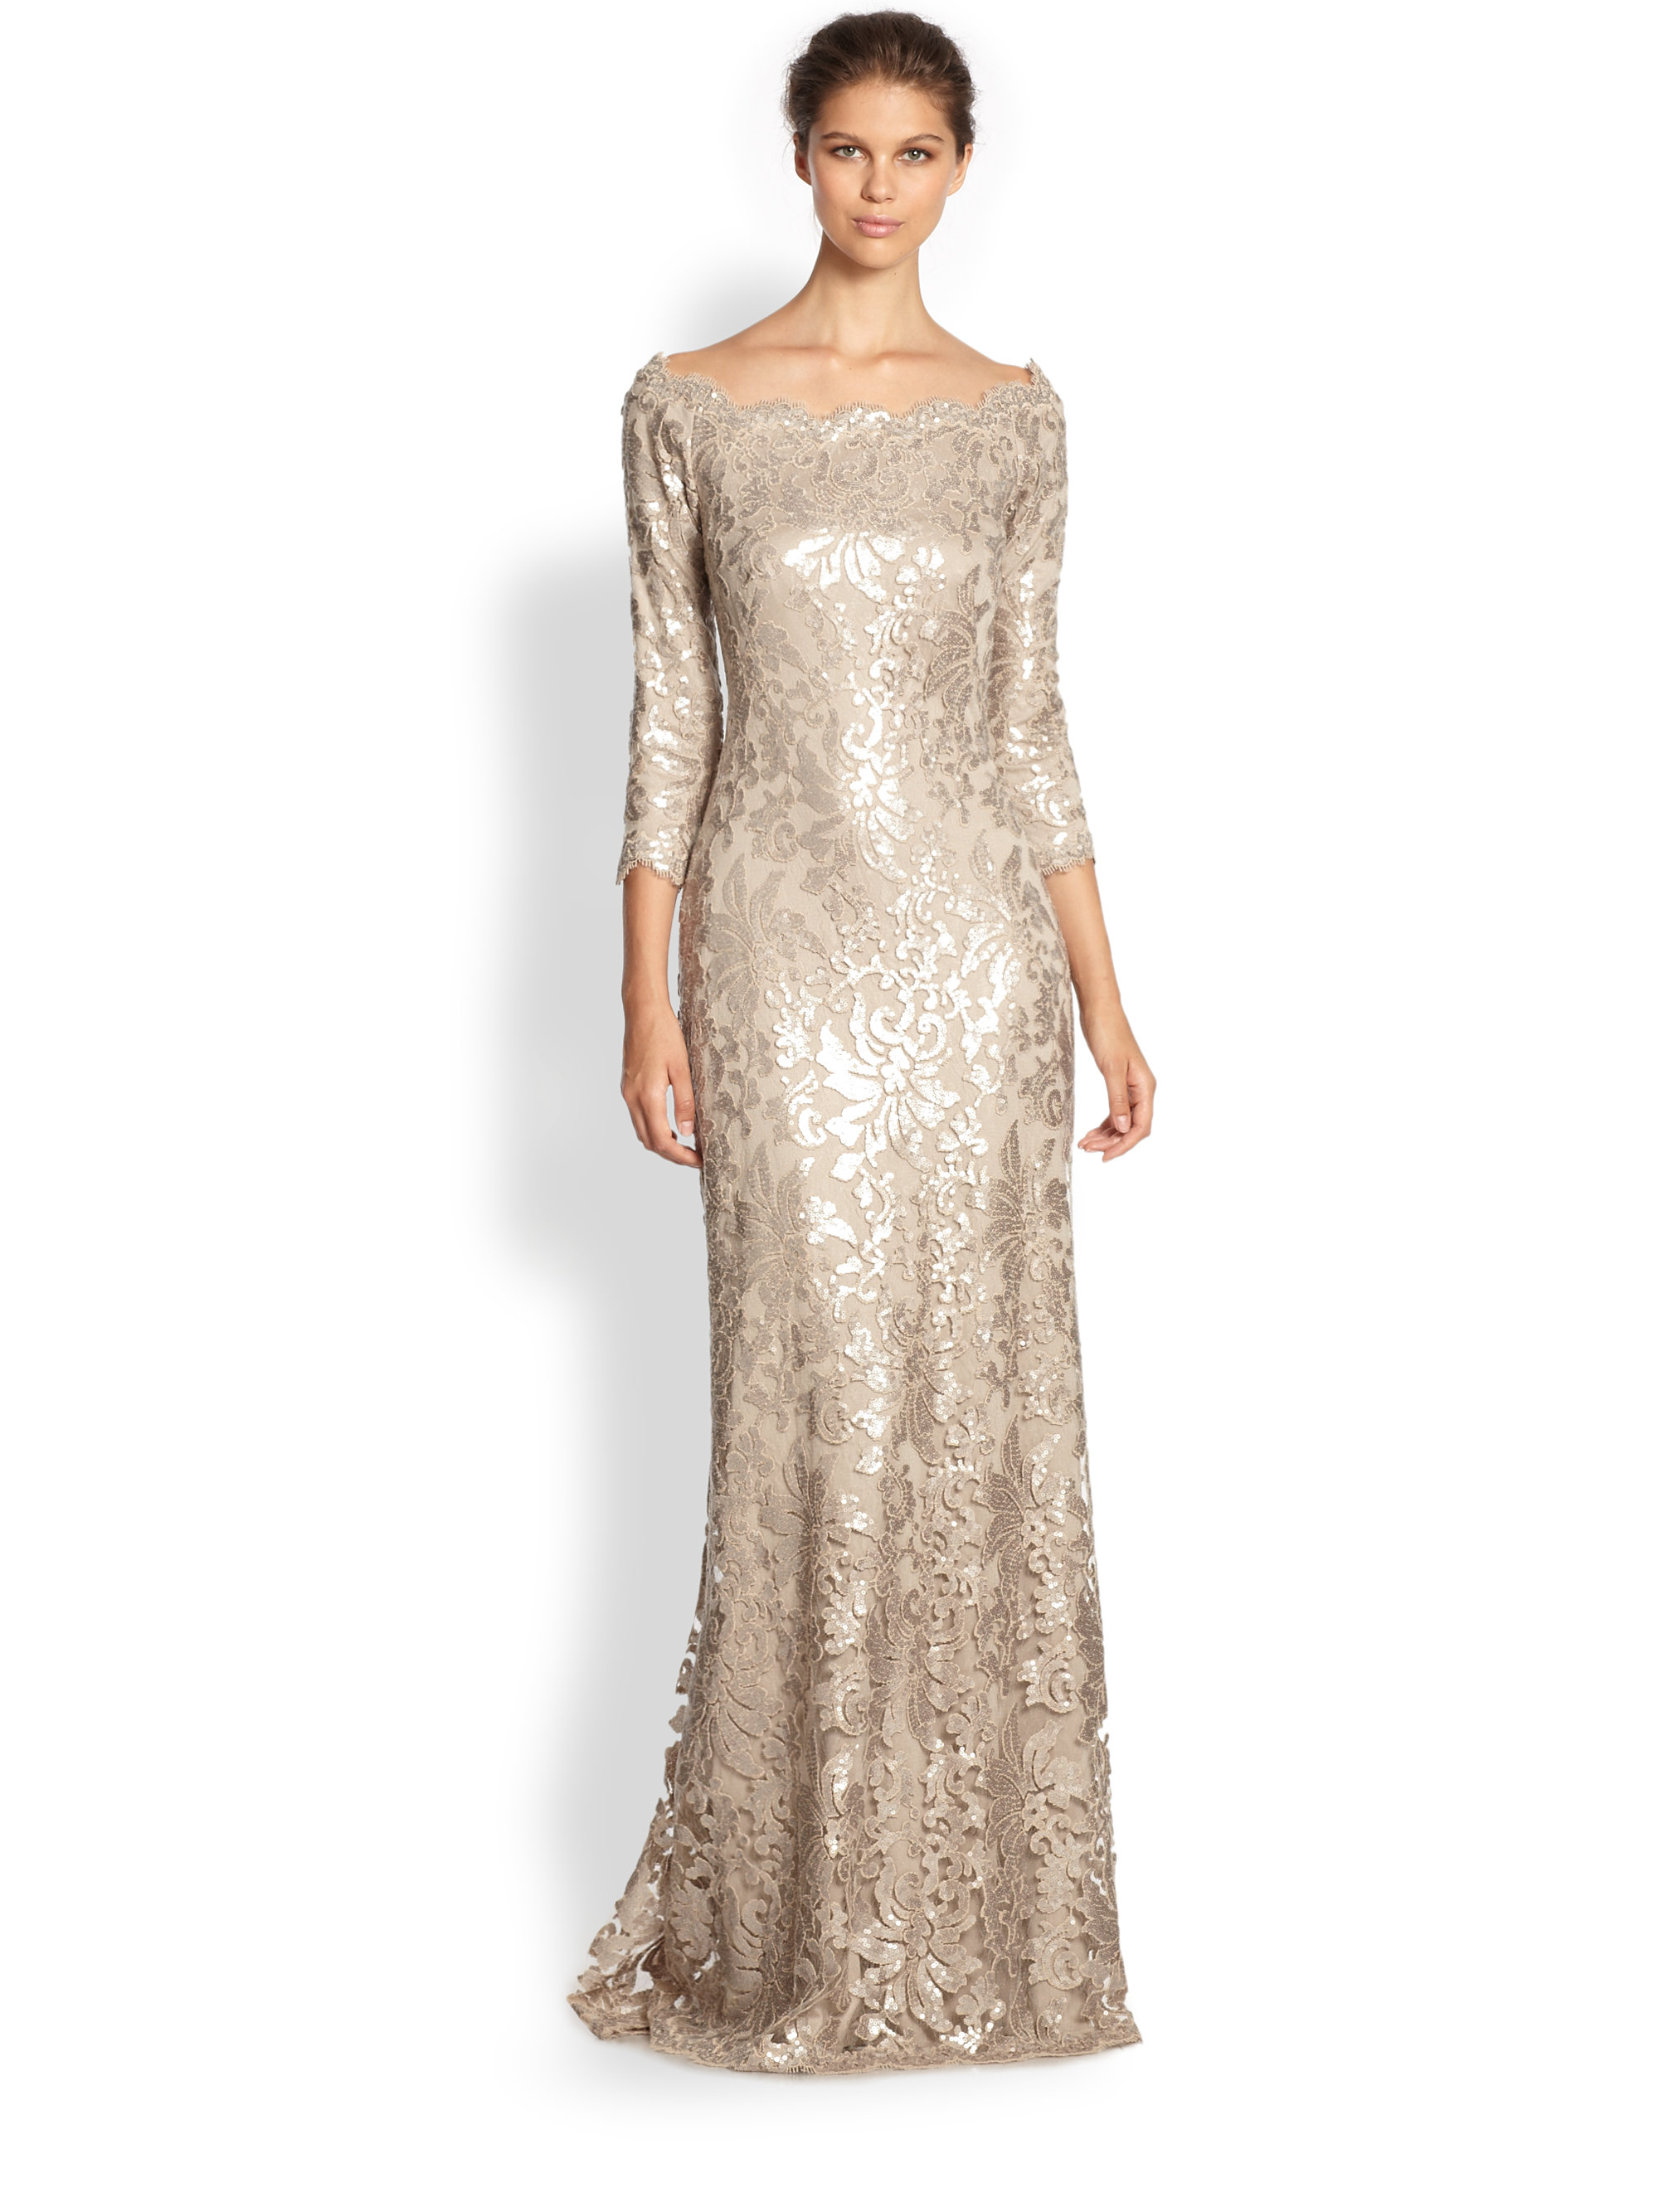 Saks Fifth Avenue Mother of the Groom Dresses